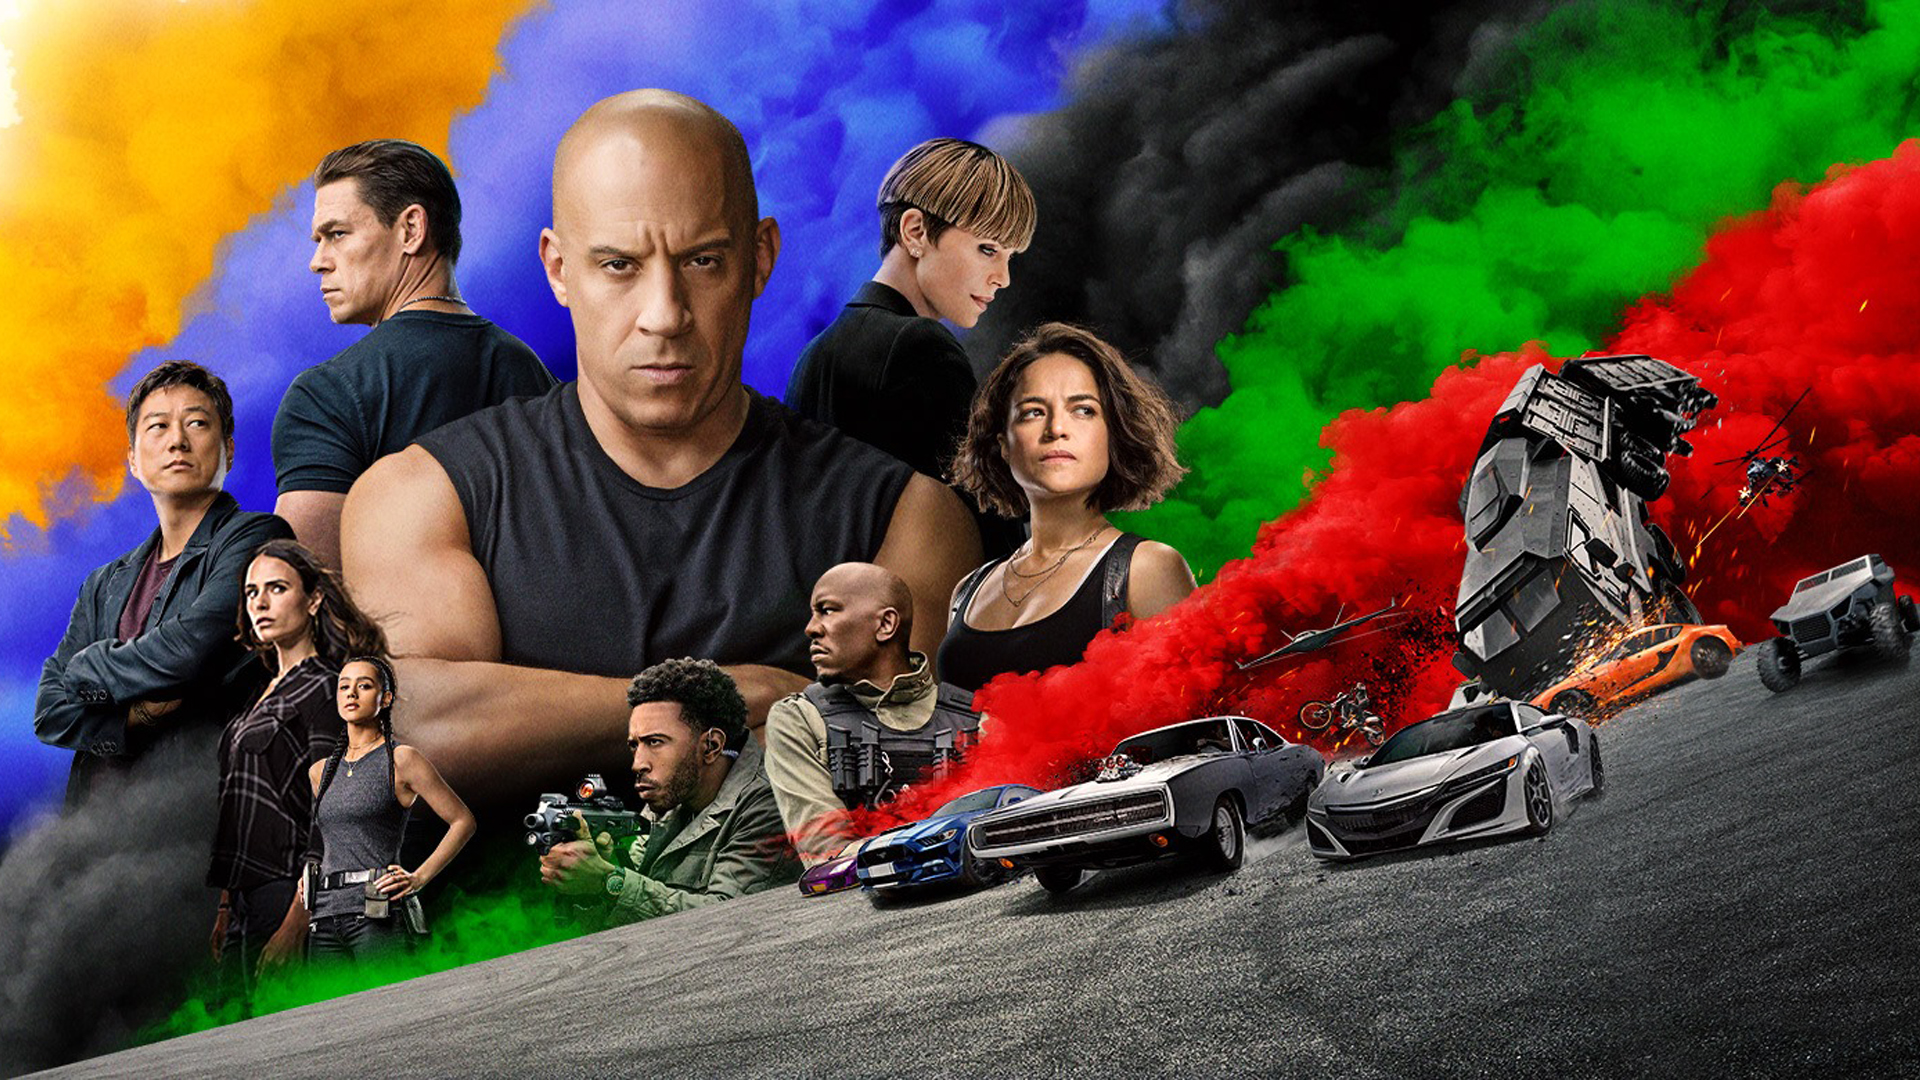 Fast and Furious 9 Wallpaper 1920x1080 by sachso74 1920x1080